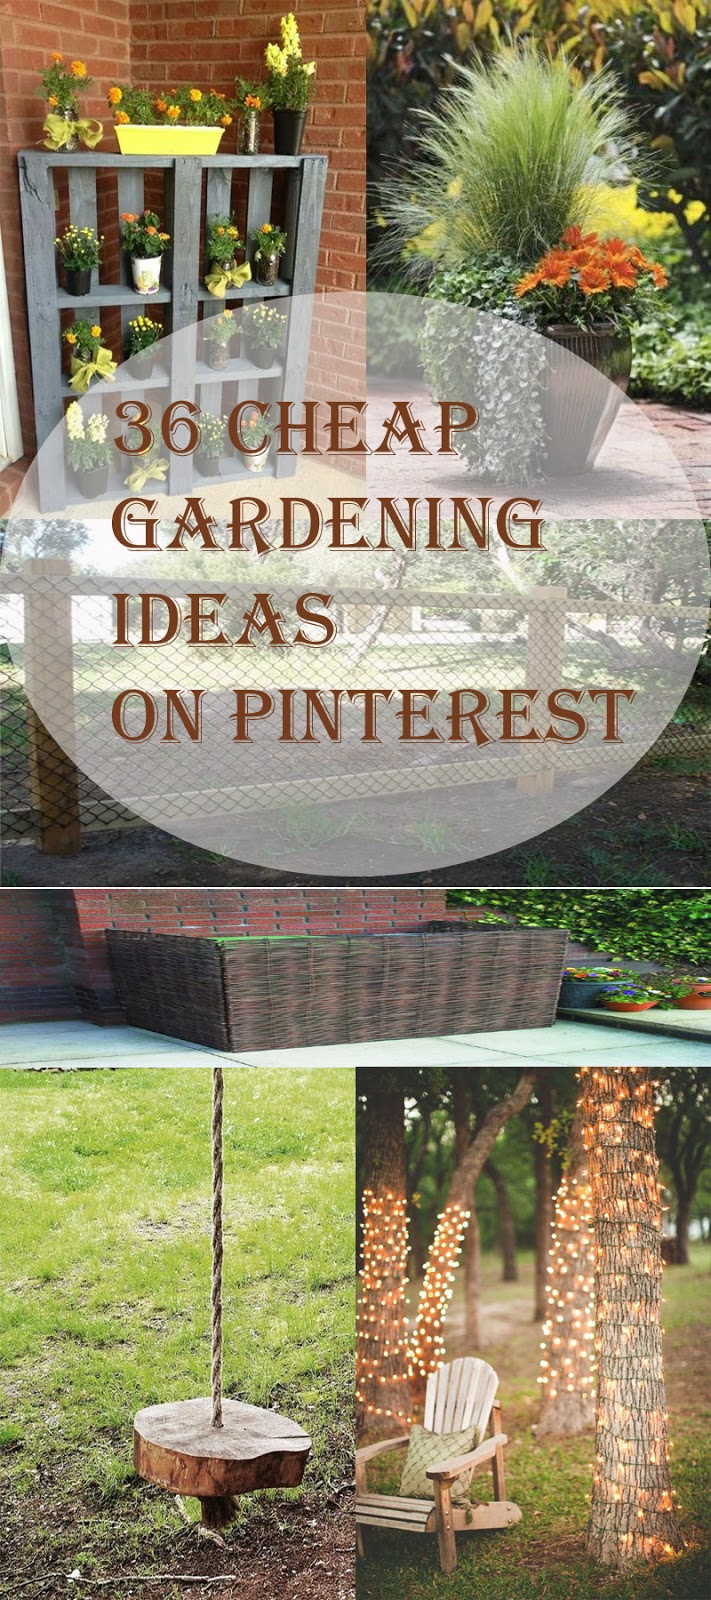 36 cheap gardening ideas on pinterest - a blog on garden